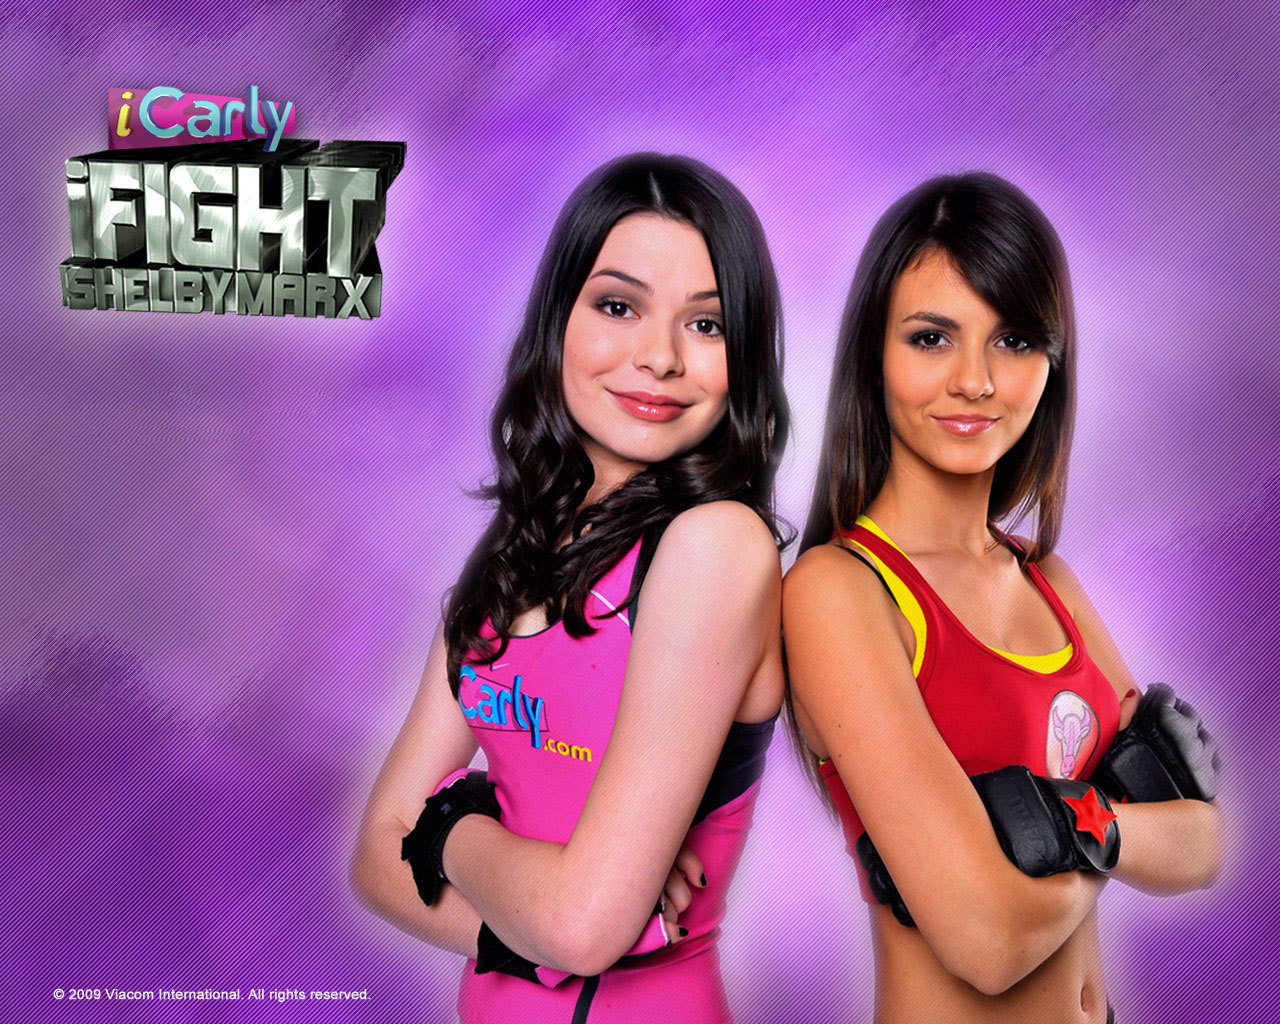 iCarly i carly wallpaper 13